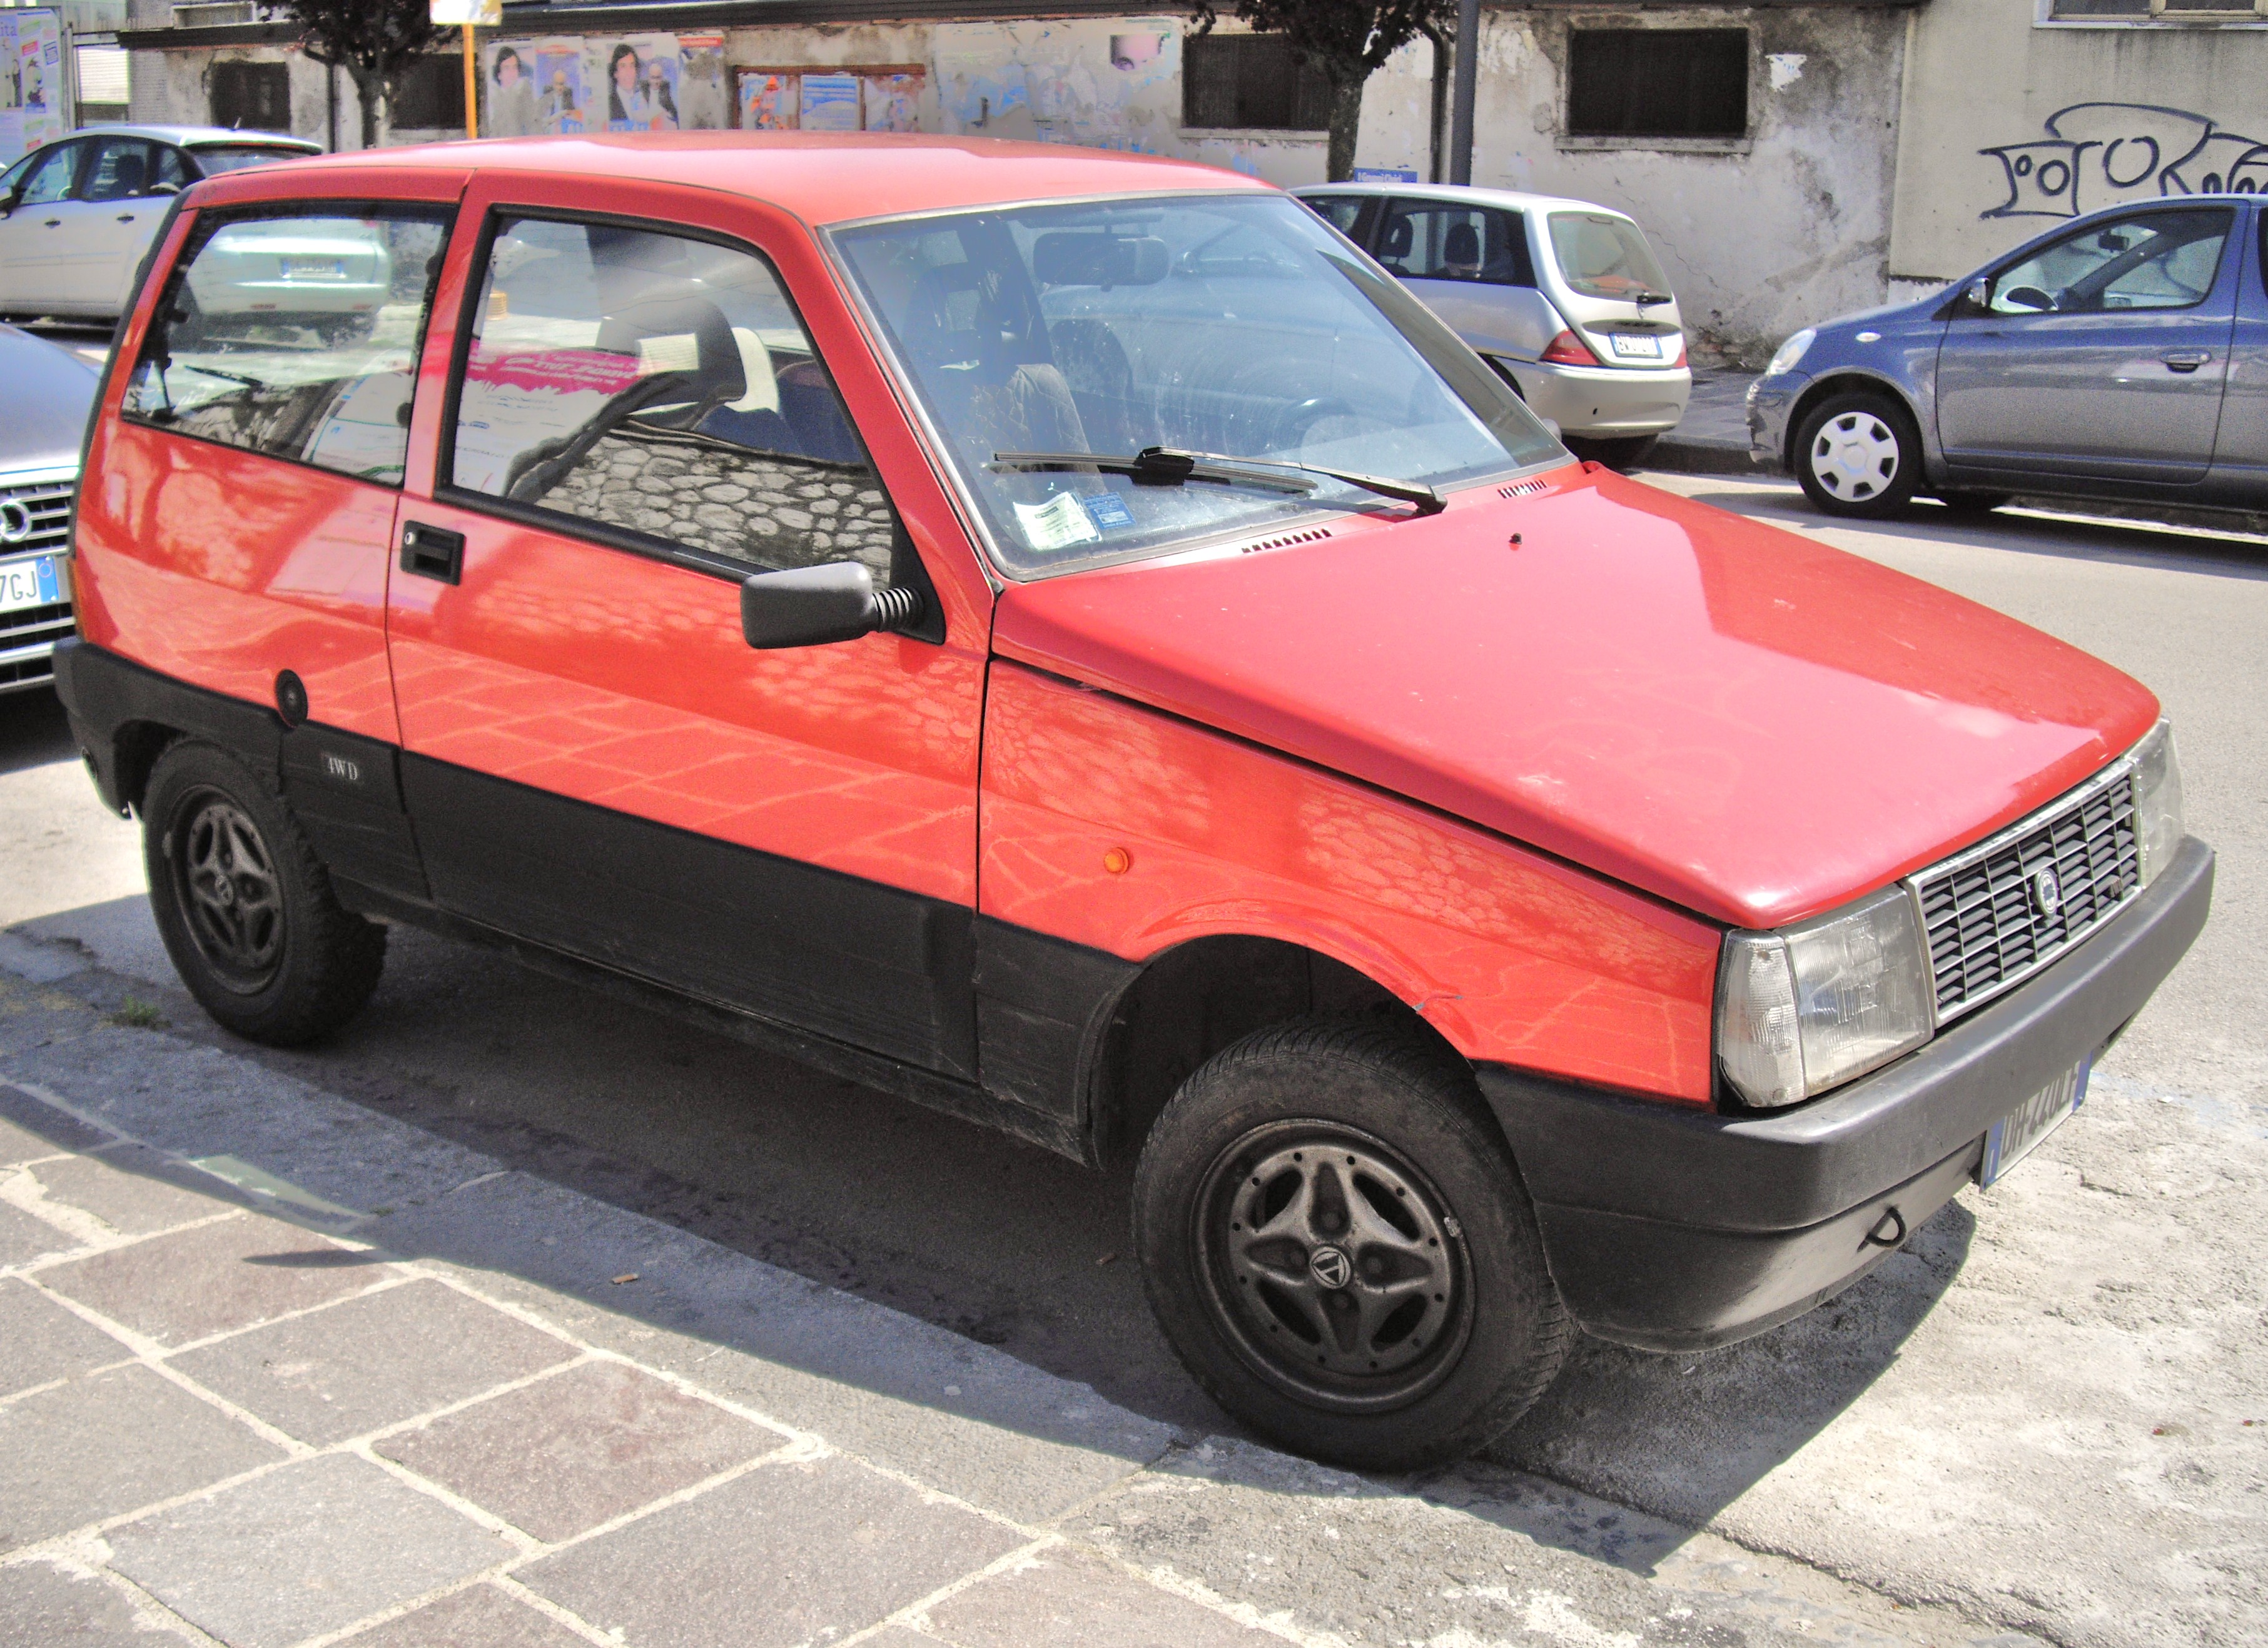 File:Lancia Y10 4WD red.JPG - Wikimedia Commons